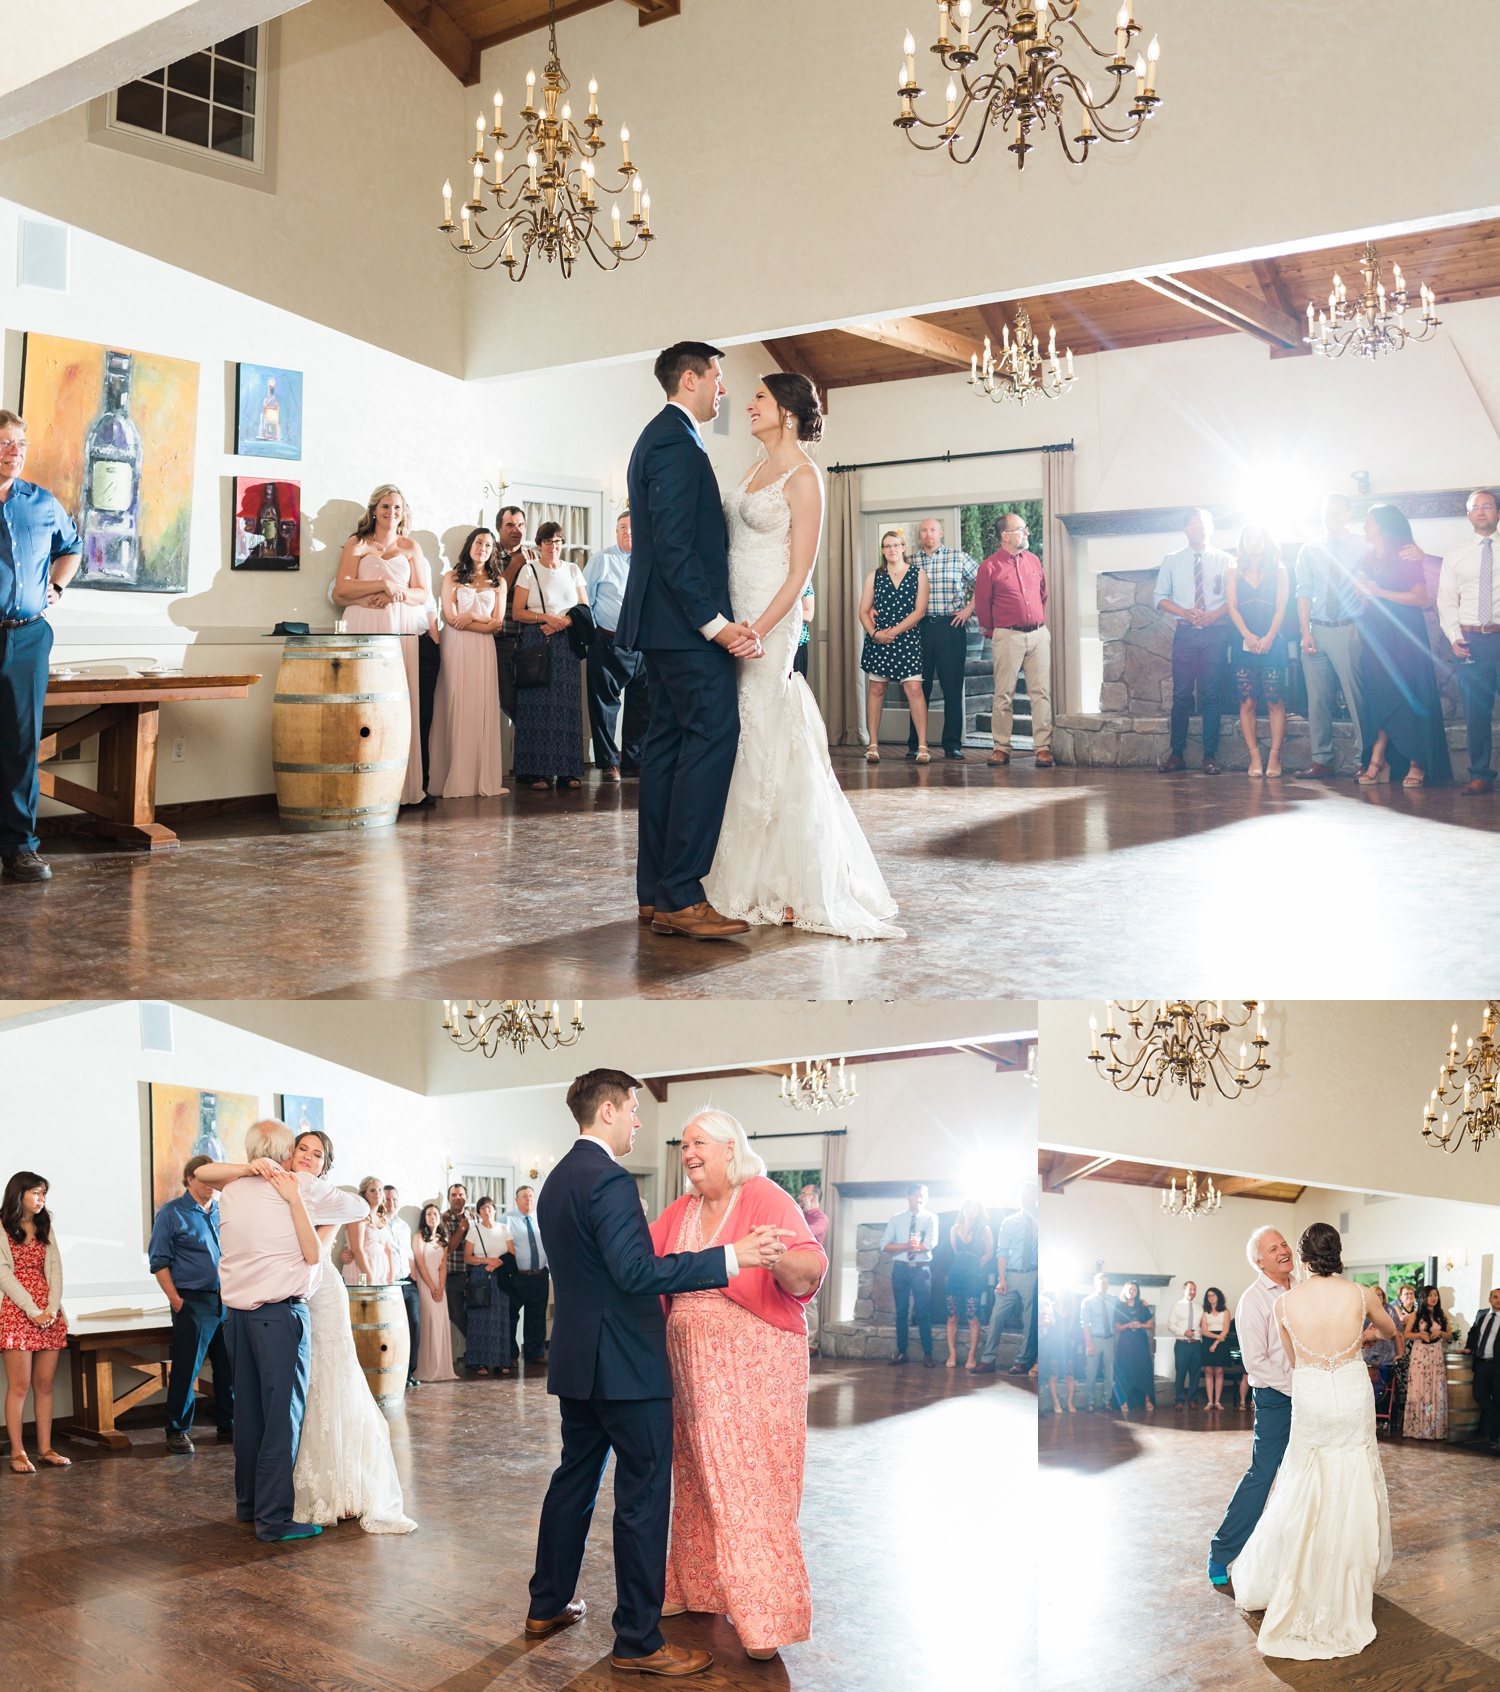 A bride and groom have their first dance at a wedding at Chateau Lill in Woodinville, a wedding venue near Seattle, WA.   Joanna Monger Photography   Seattle & Snohomish Photographer